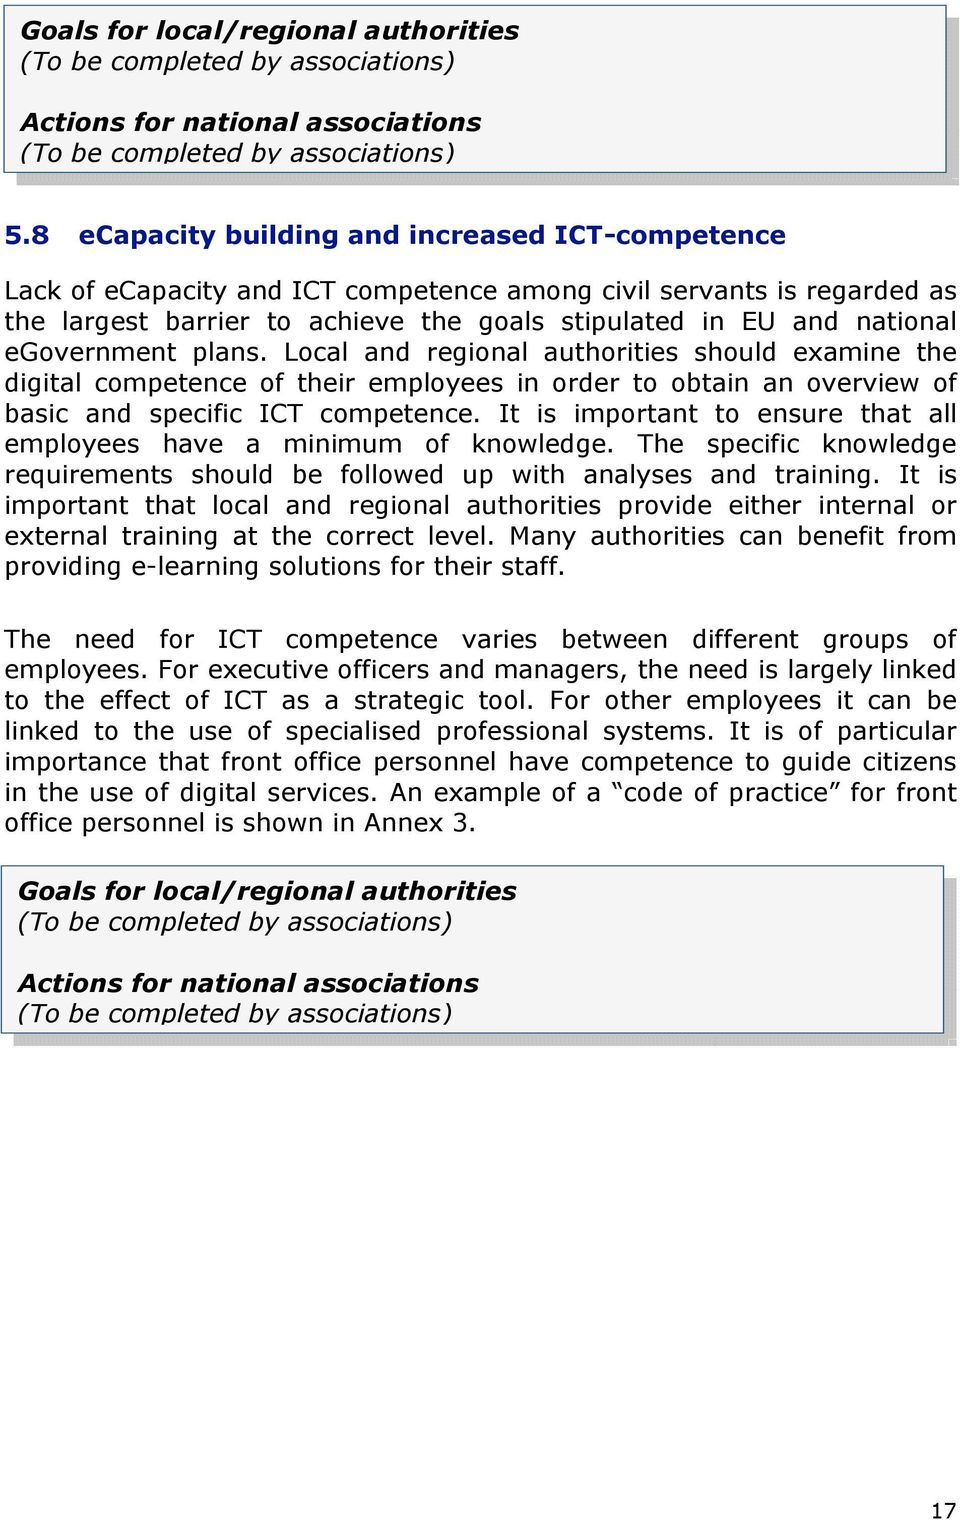 egovernment plans. Local and regional authorities should examine the digital competence of their employees in order to obtain an overview of basic and specific ICT competence.